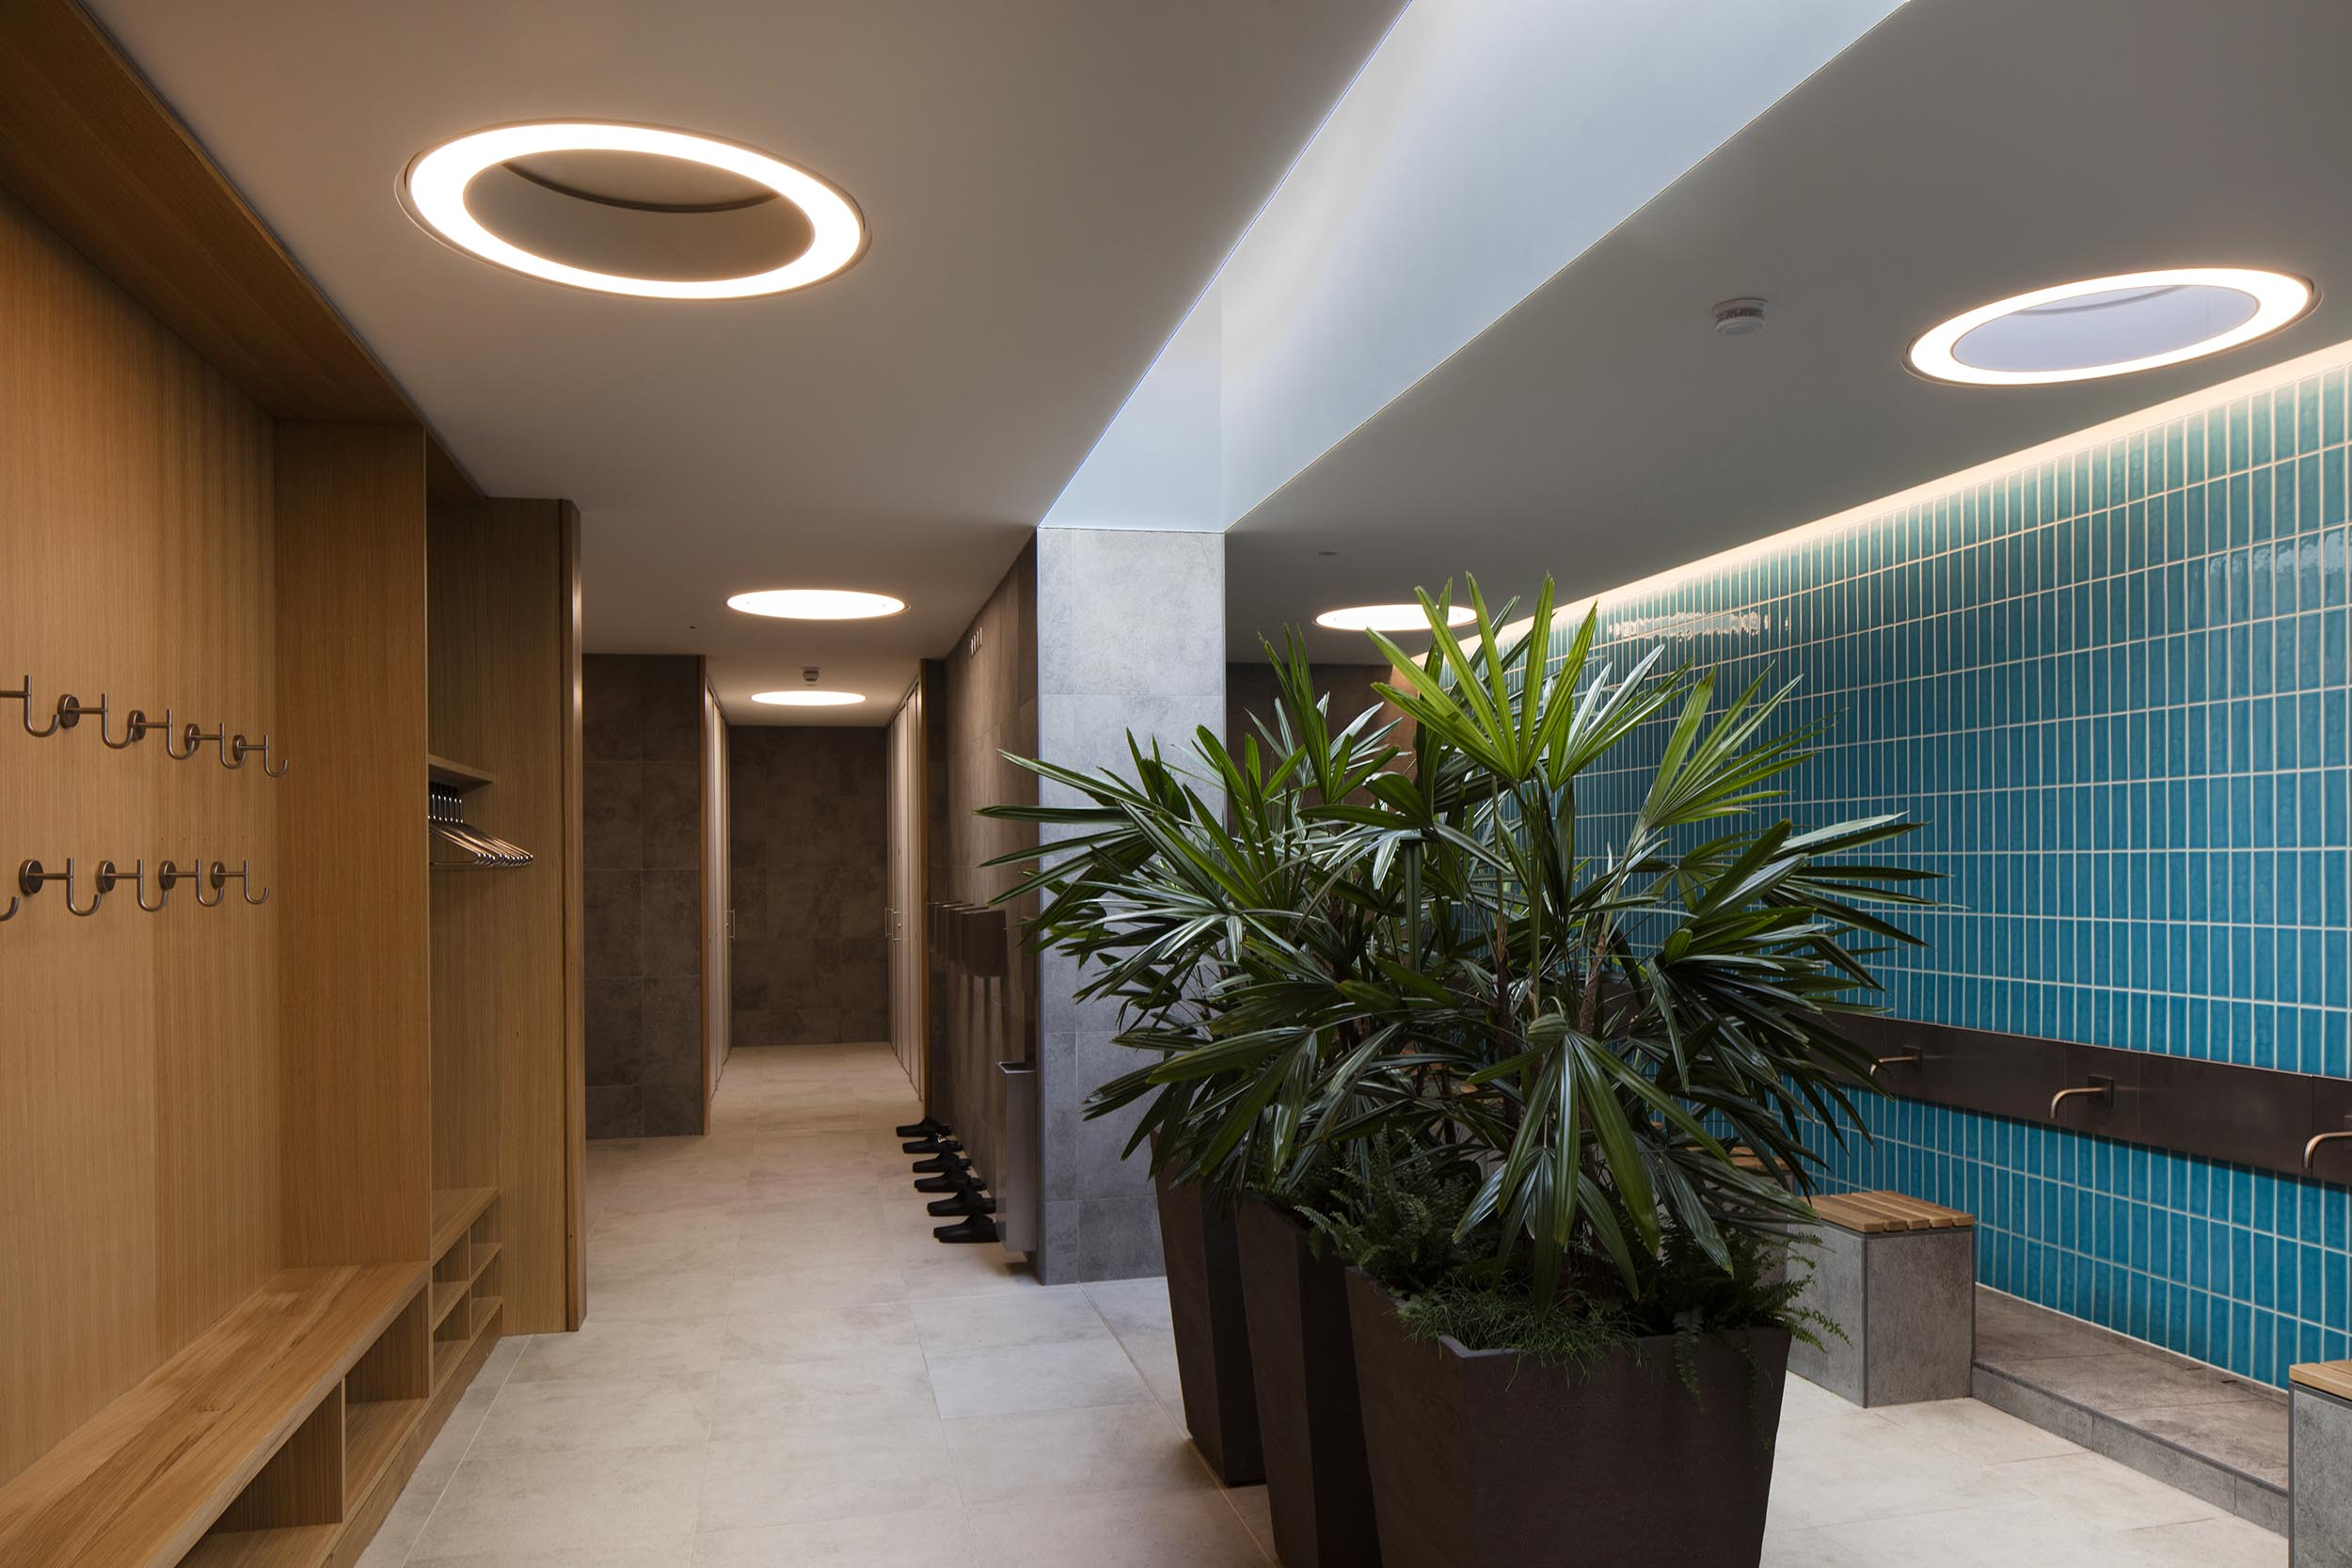 Cambridge Mosque Male ablutions by Marks Barfield Architects, photography by Morley von Sternberg